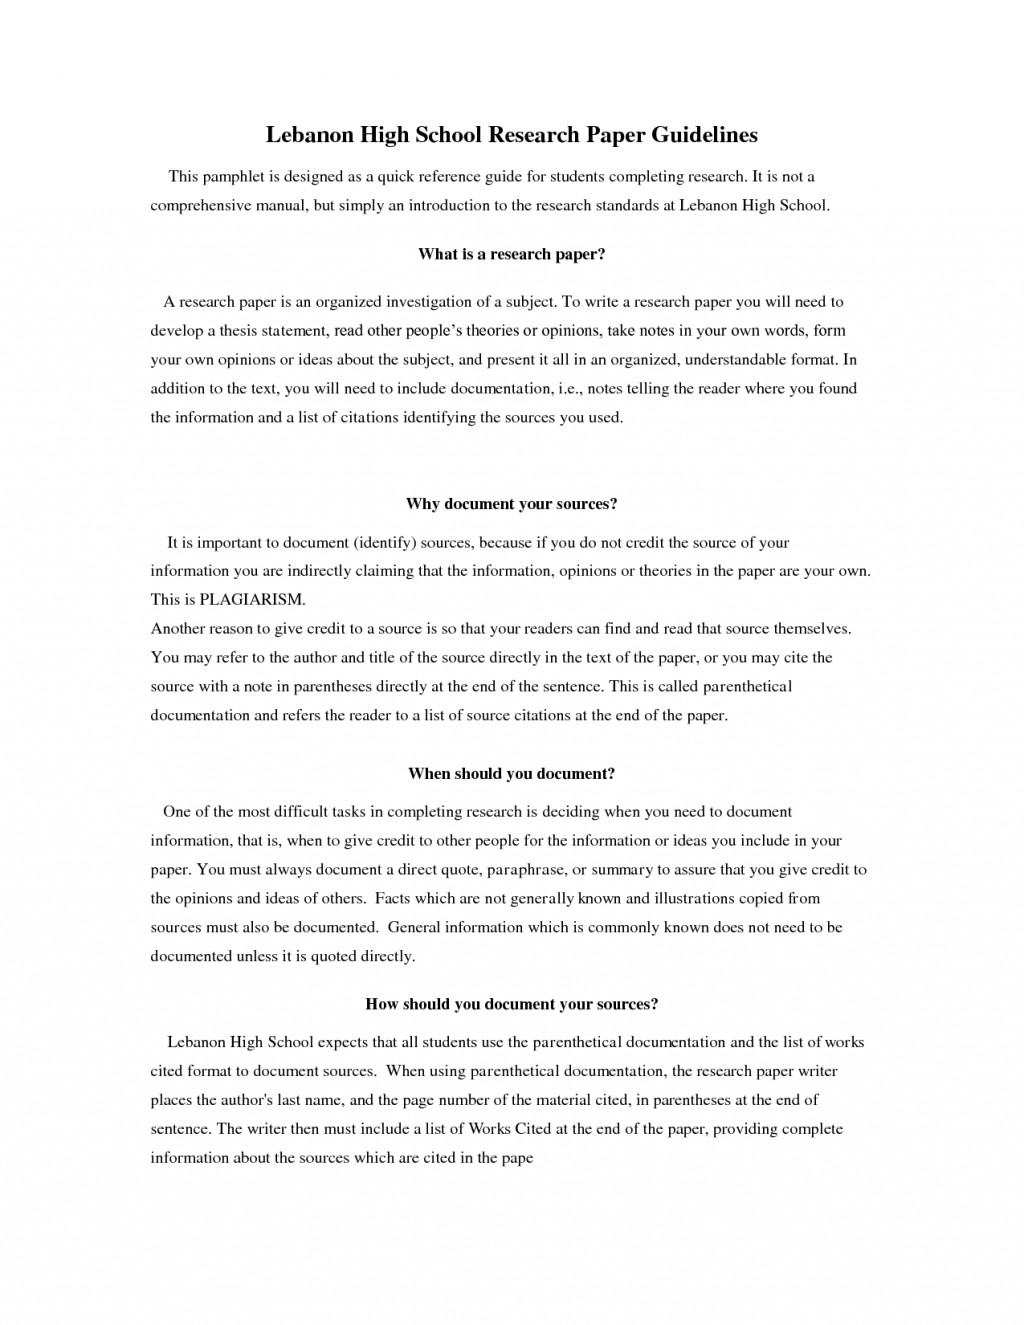 024 Research Paper Good Singular Topic Topics 2019 Ideas In Business And Finance For College Students Large